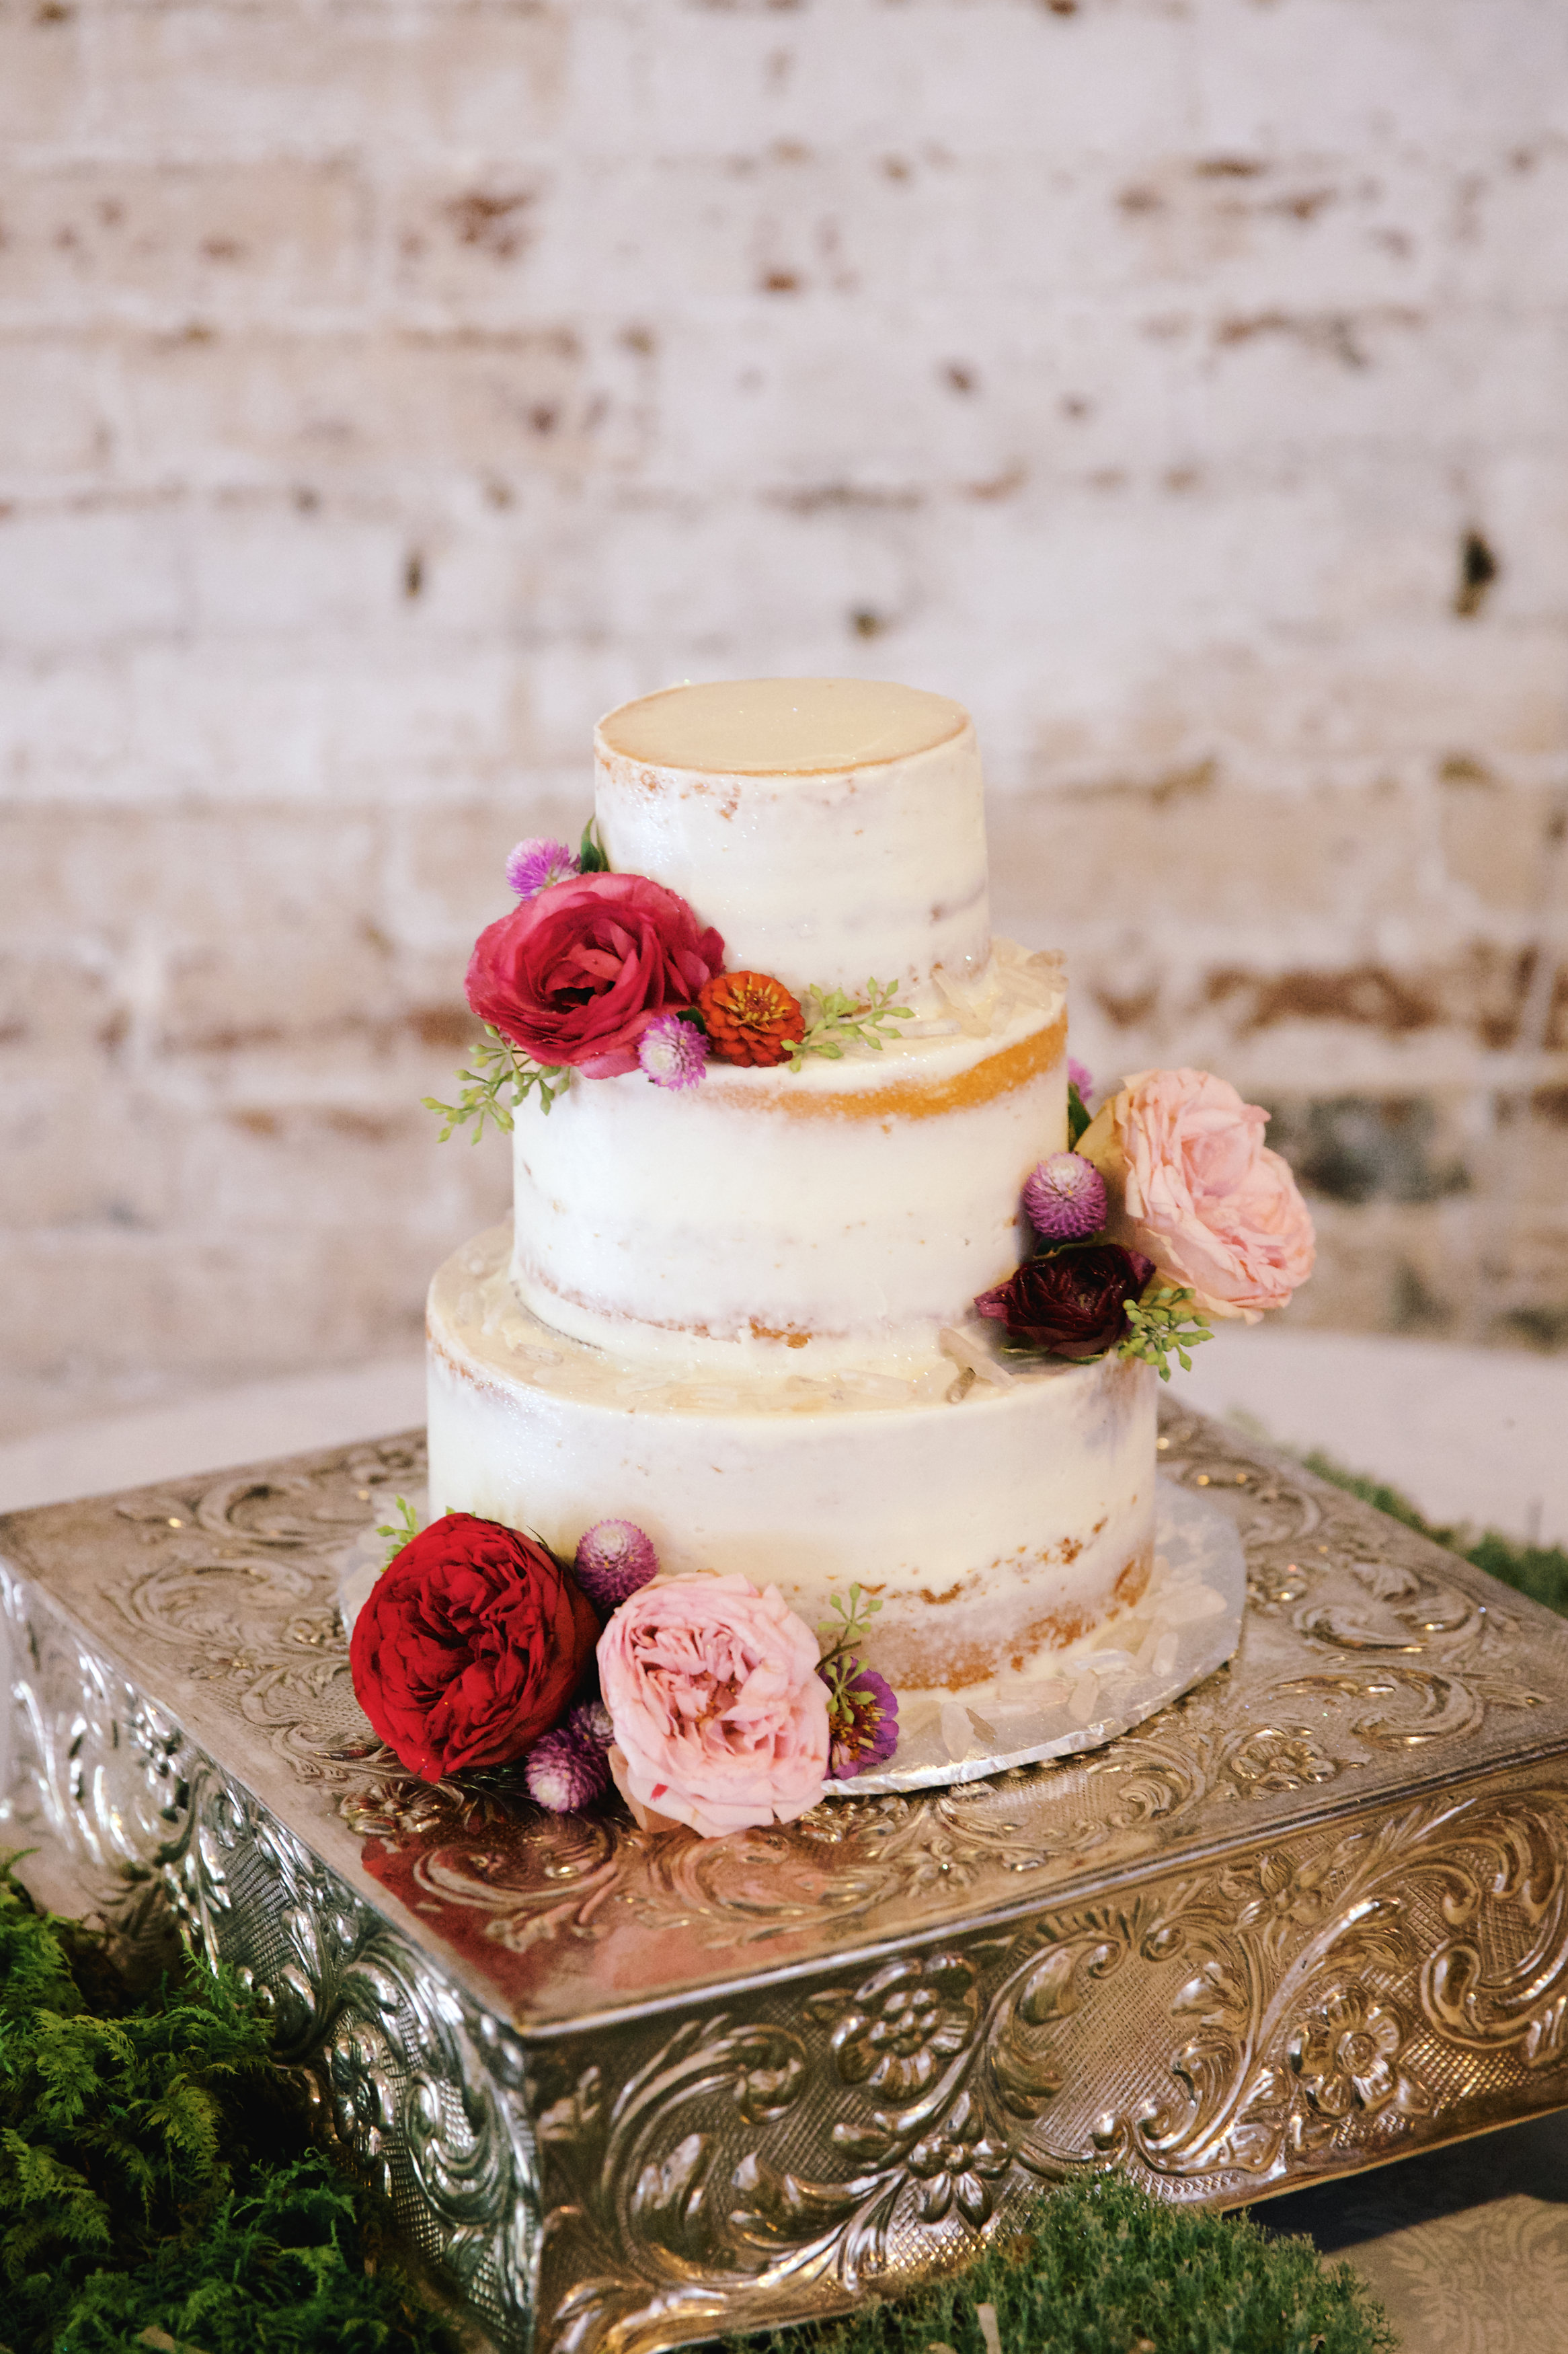 """A current wedding trend, the """"unfinished"""" bare theme is popular among brides today. Instead of several layers of buttercream or fondant, cake designers are leaving parts of the cake exposed, for a fresh, creative look.  Photo:  Olivia Rae James"""